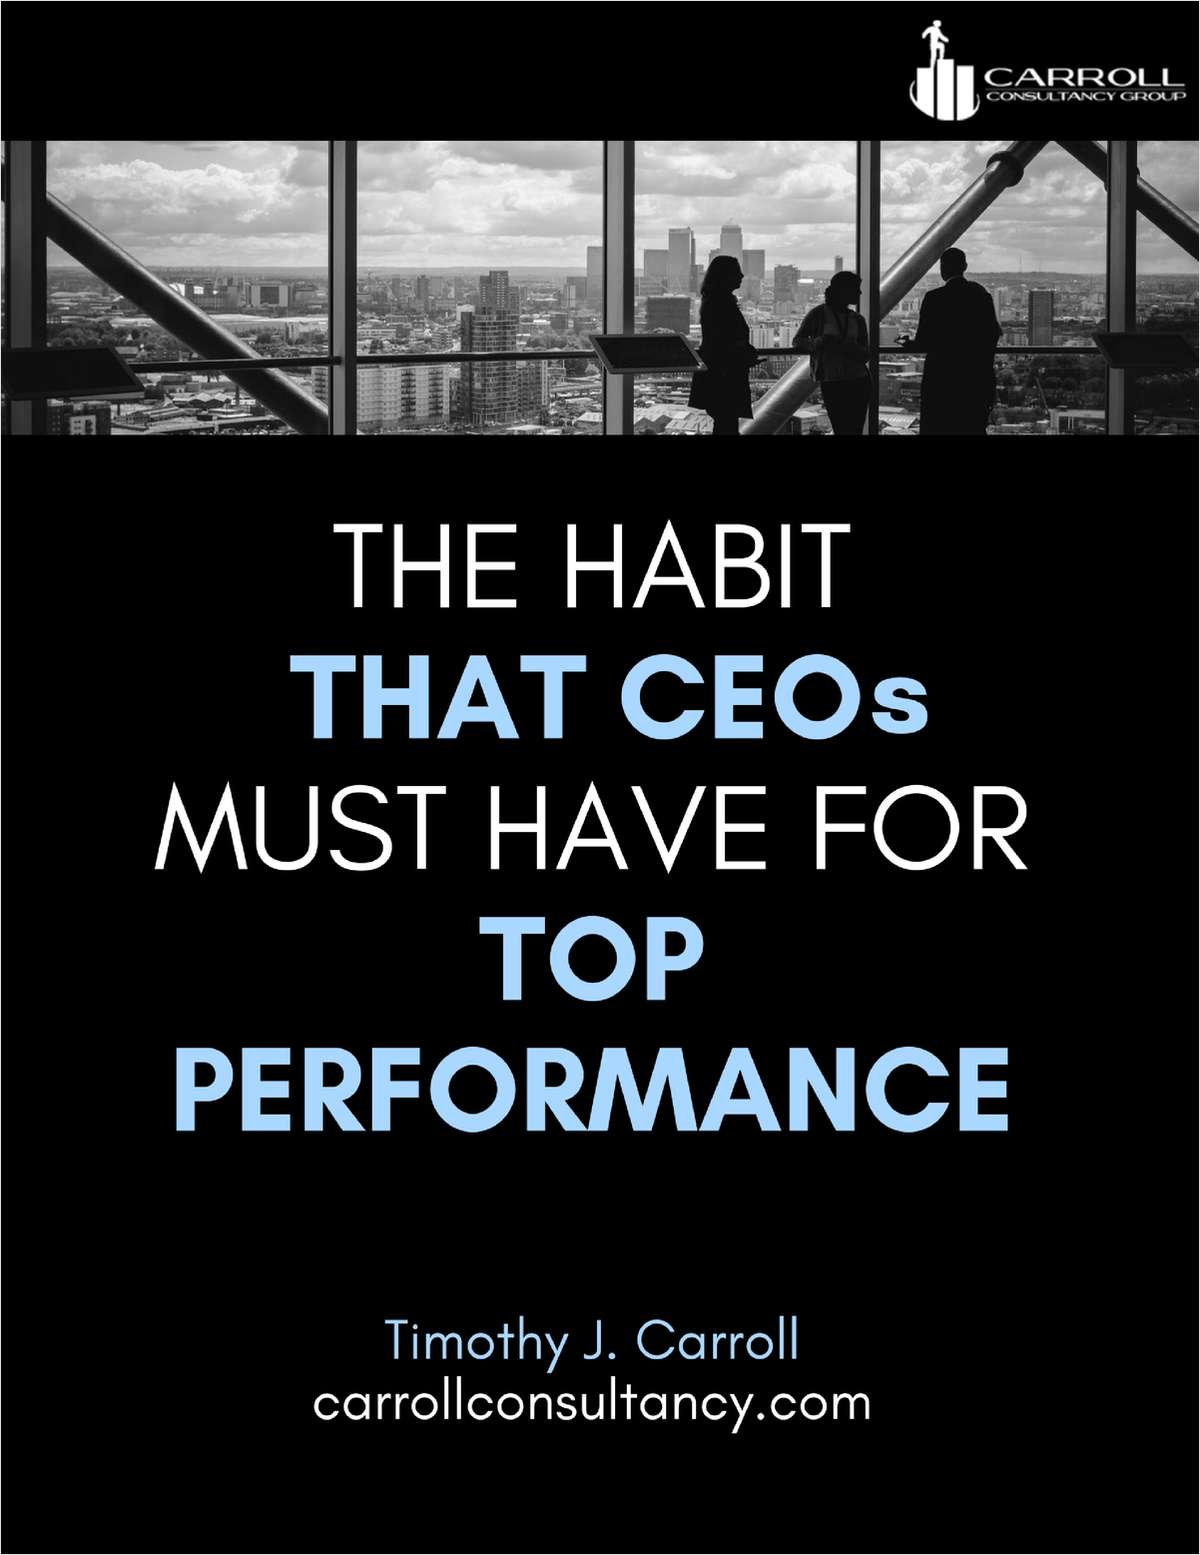 The Habit that CEOs Must Have for Top Performance